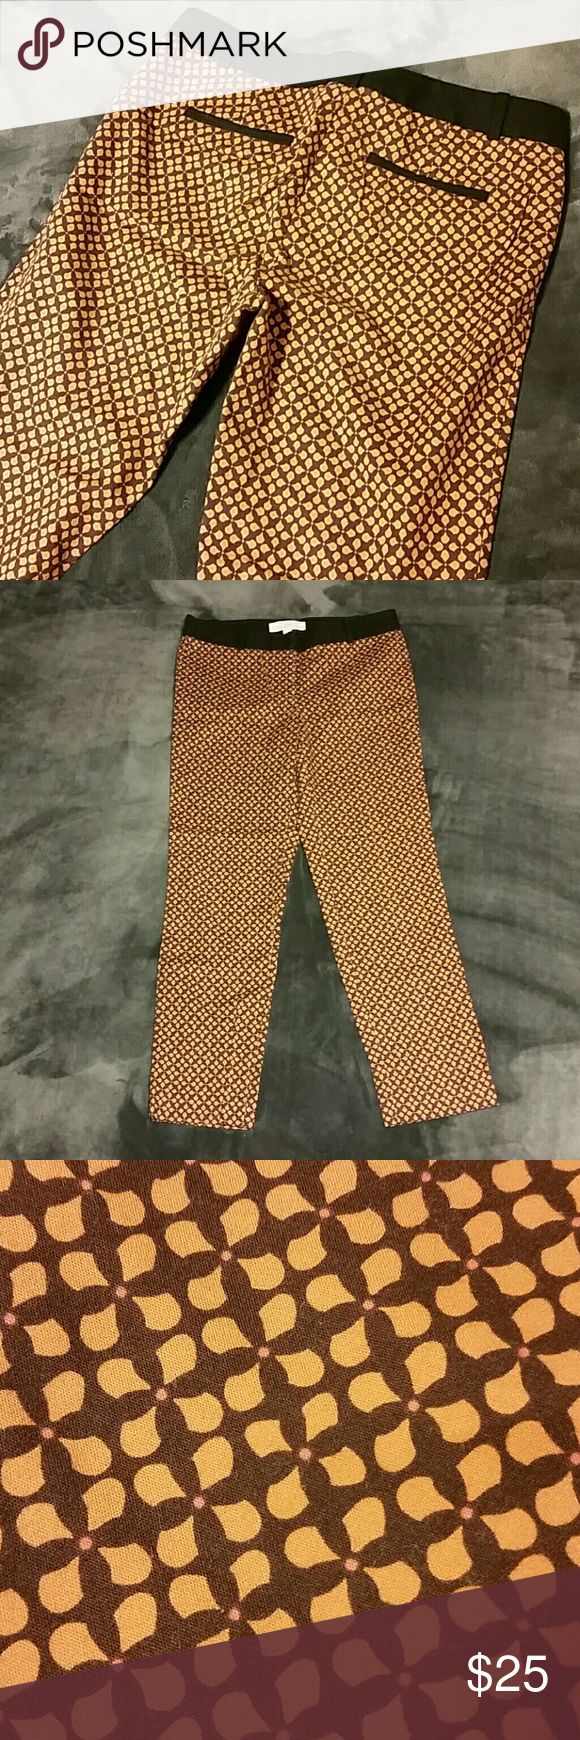 """Anne Taylor Loft retro inspired ankle pants Beautifully patterned retro inspired Anne Taylor Loft pants in excellent, like new condition. Black waistband with brown, muted yellow orange, and peach pattern. Great fall colors! 97%cotton, 3%spandex. Waist 16"""", inseam 26.5. I'm 5'2 and the length reaches just below my ankle. Offers welcome! LOFT Pants Ankle & Cropped"""